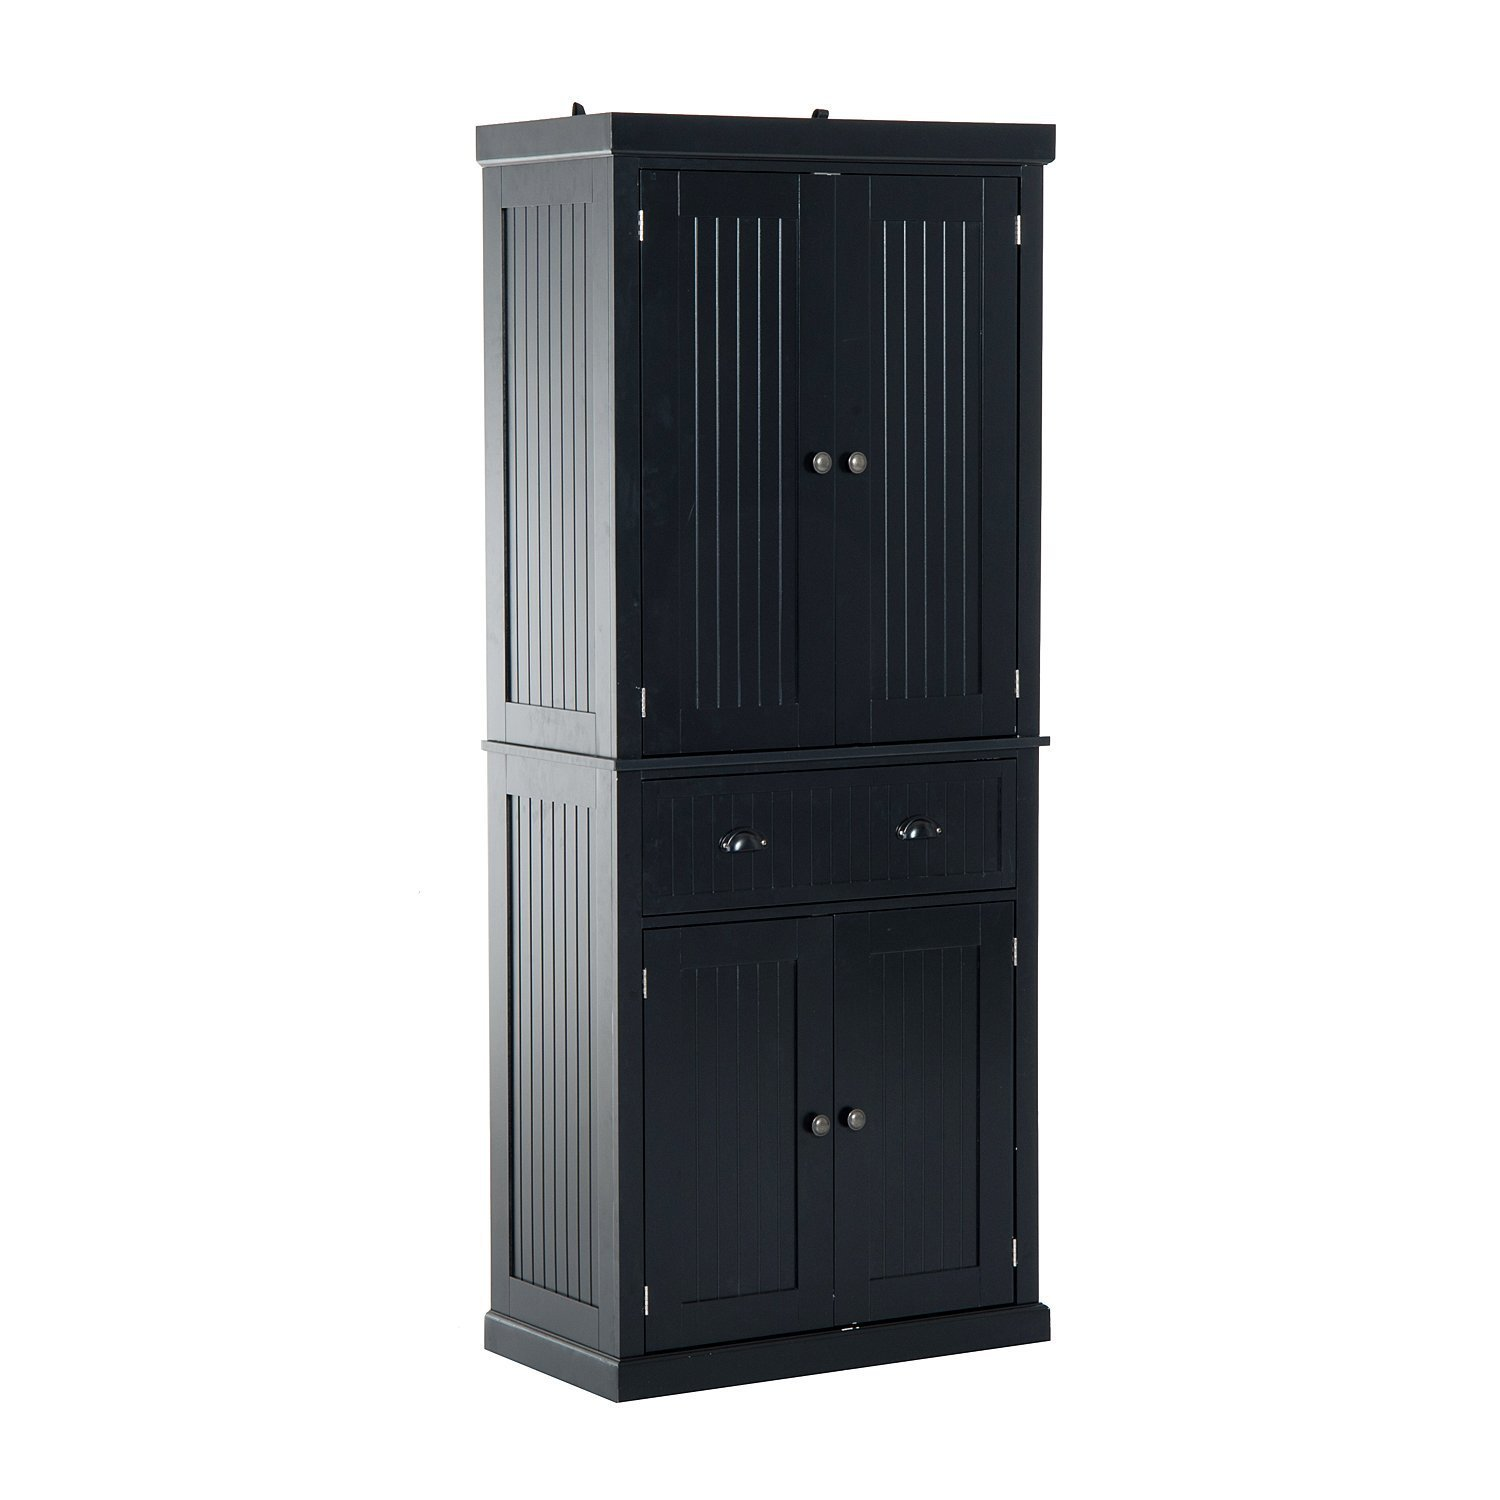 "HOMCOM 72"" Traditional Colonial Standing Kitchen Pantry Cupboard Cabinet - Black"